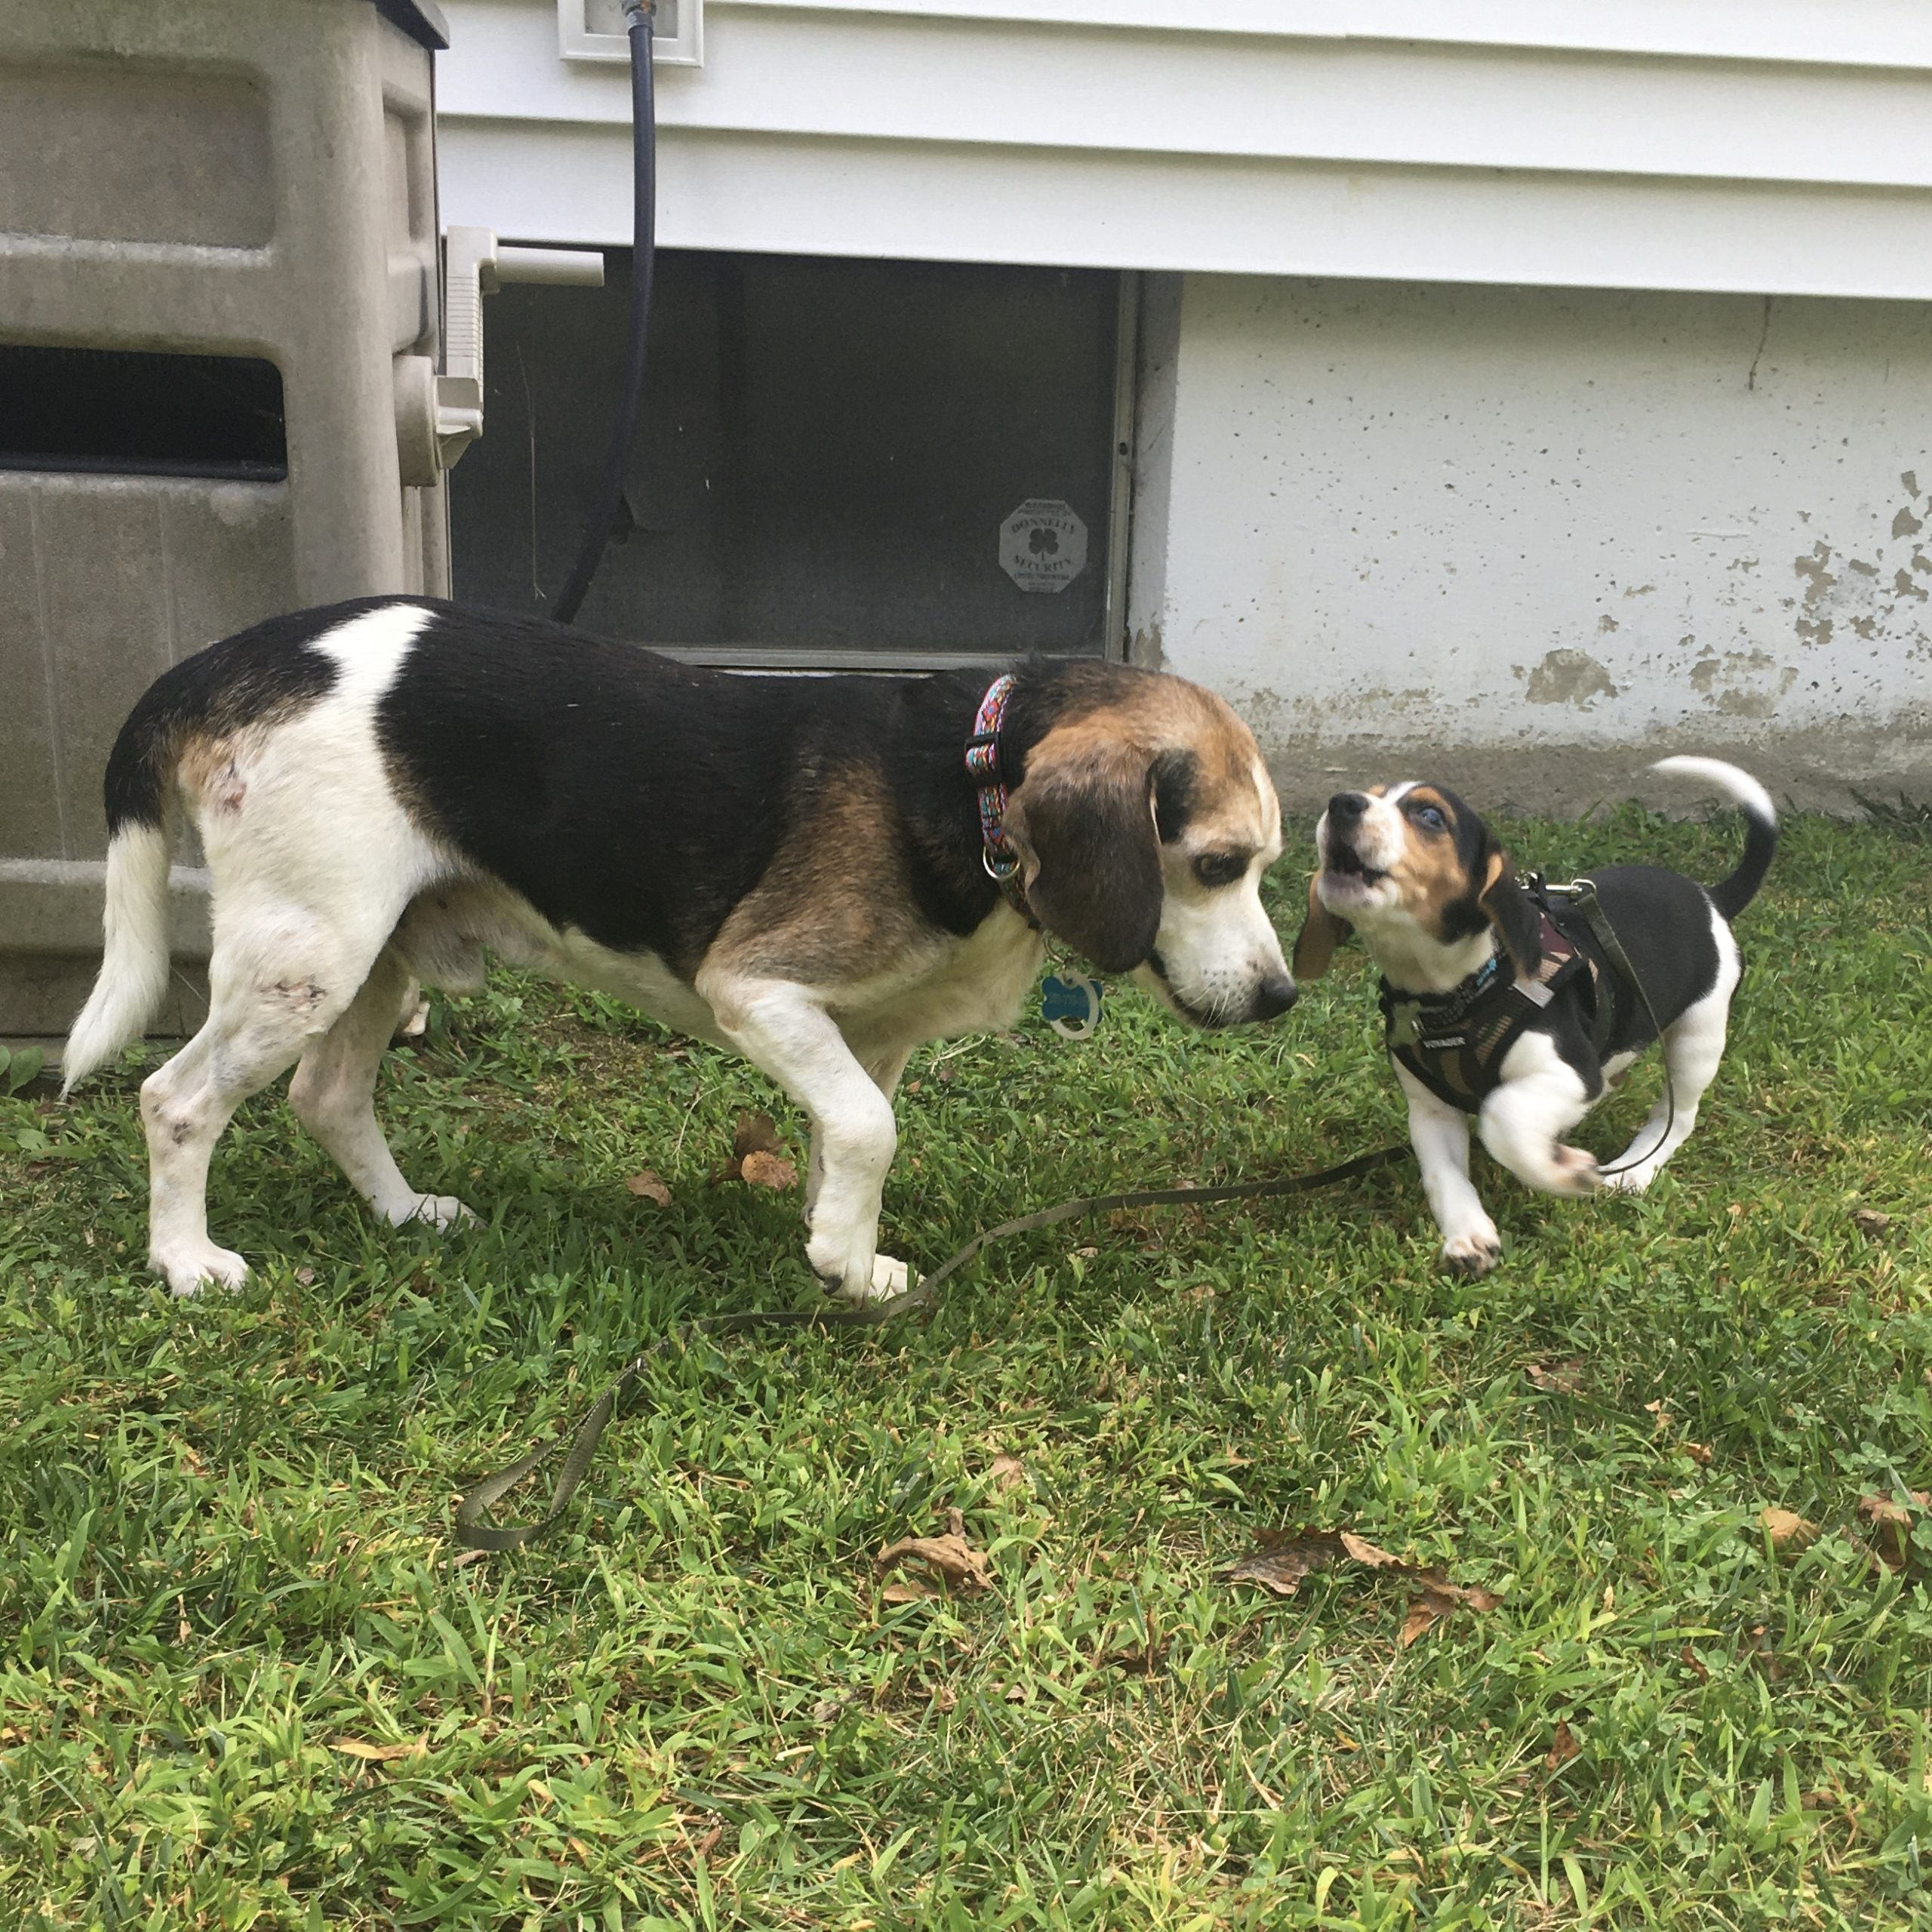 beagle rescue adopted forever home